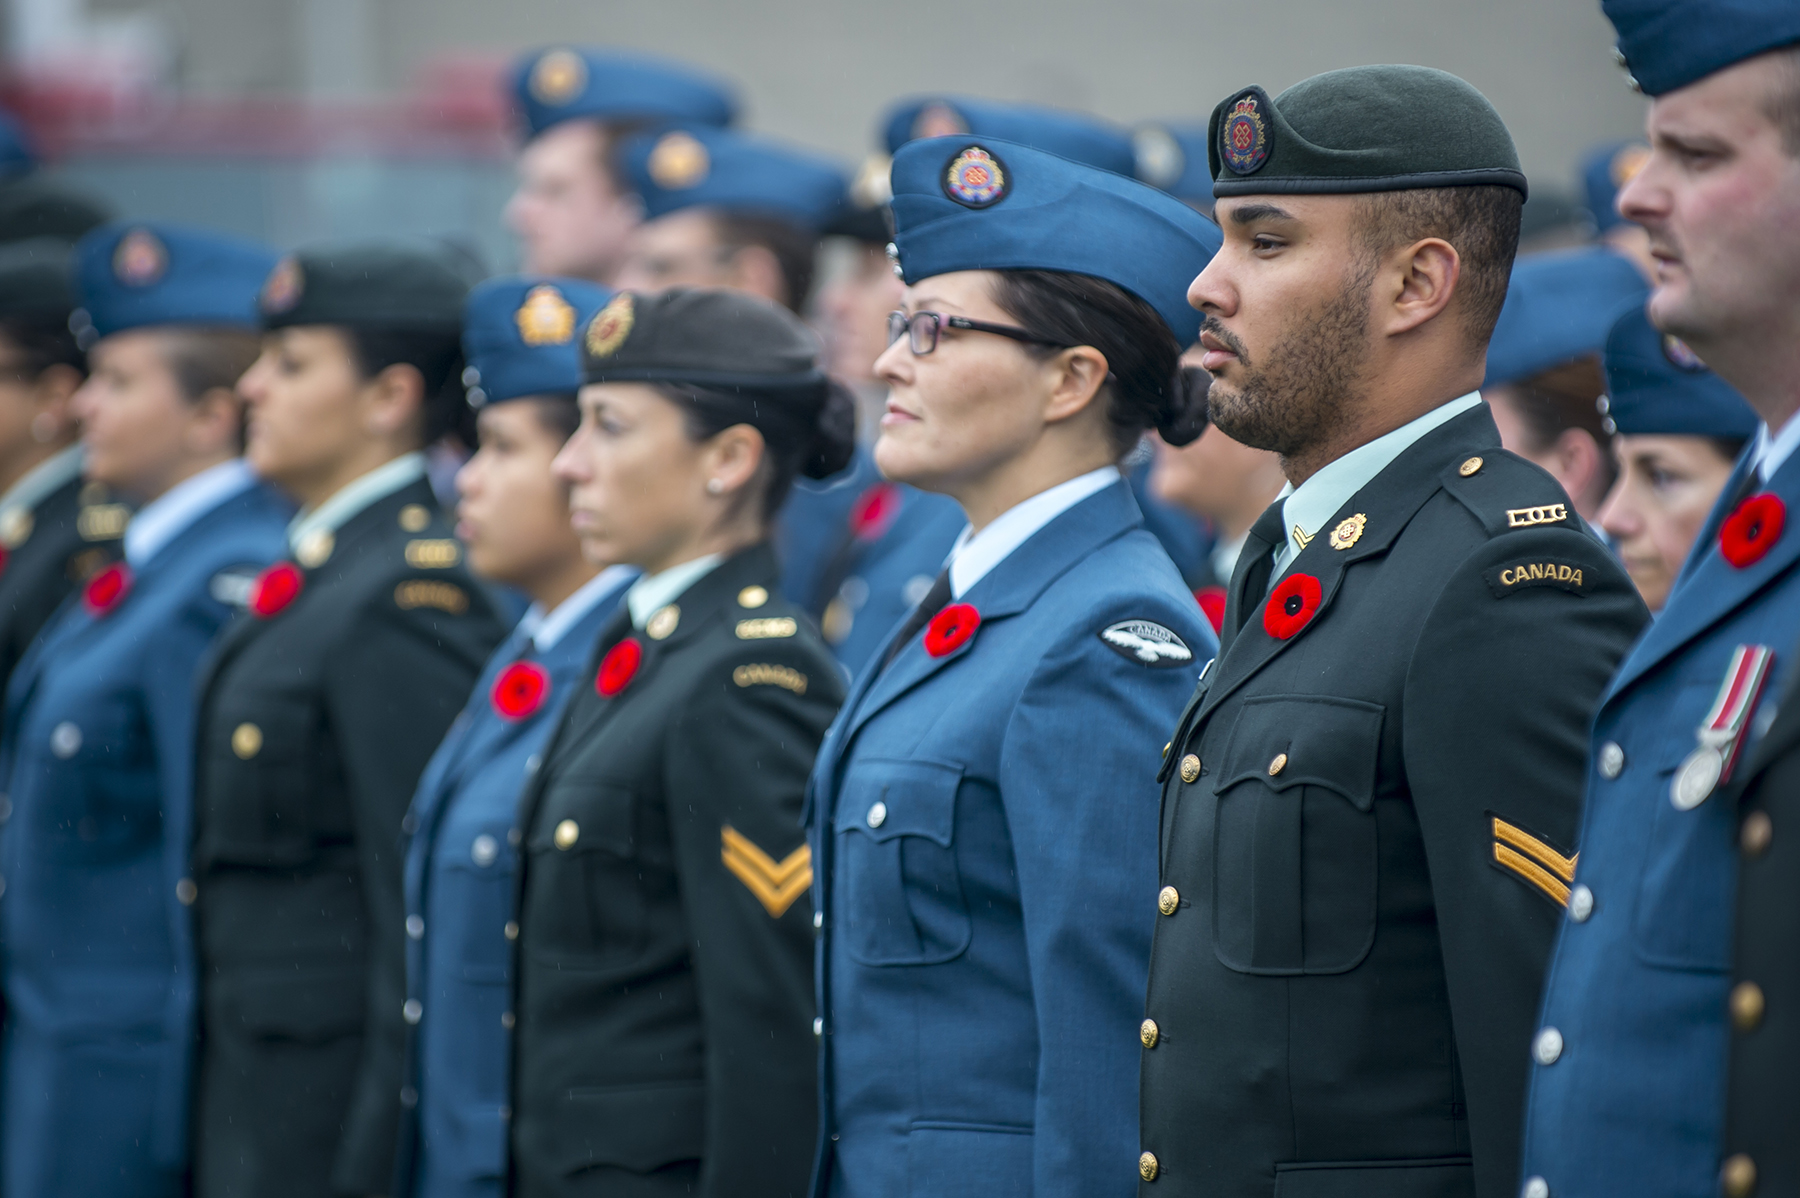 On November 11, 2015, Royal Canadian Air Force and Canadian Army members stand at attention during the Remembrance Day ceremony in Trenton, Ontario. PHOTO: Master Corporal Mathieu St-Amour